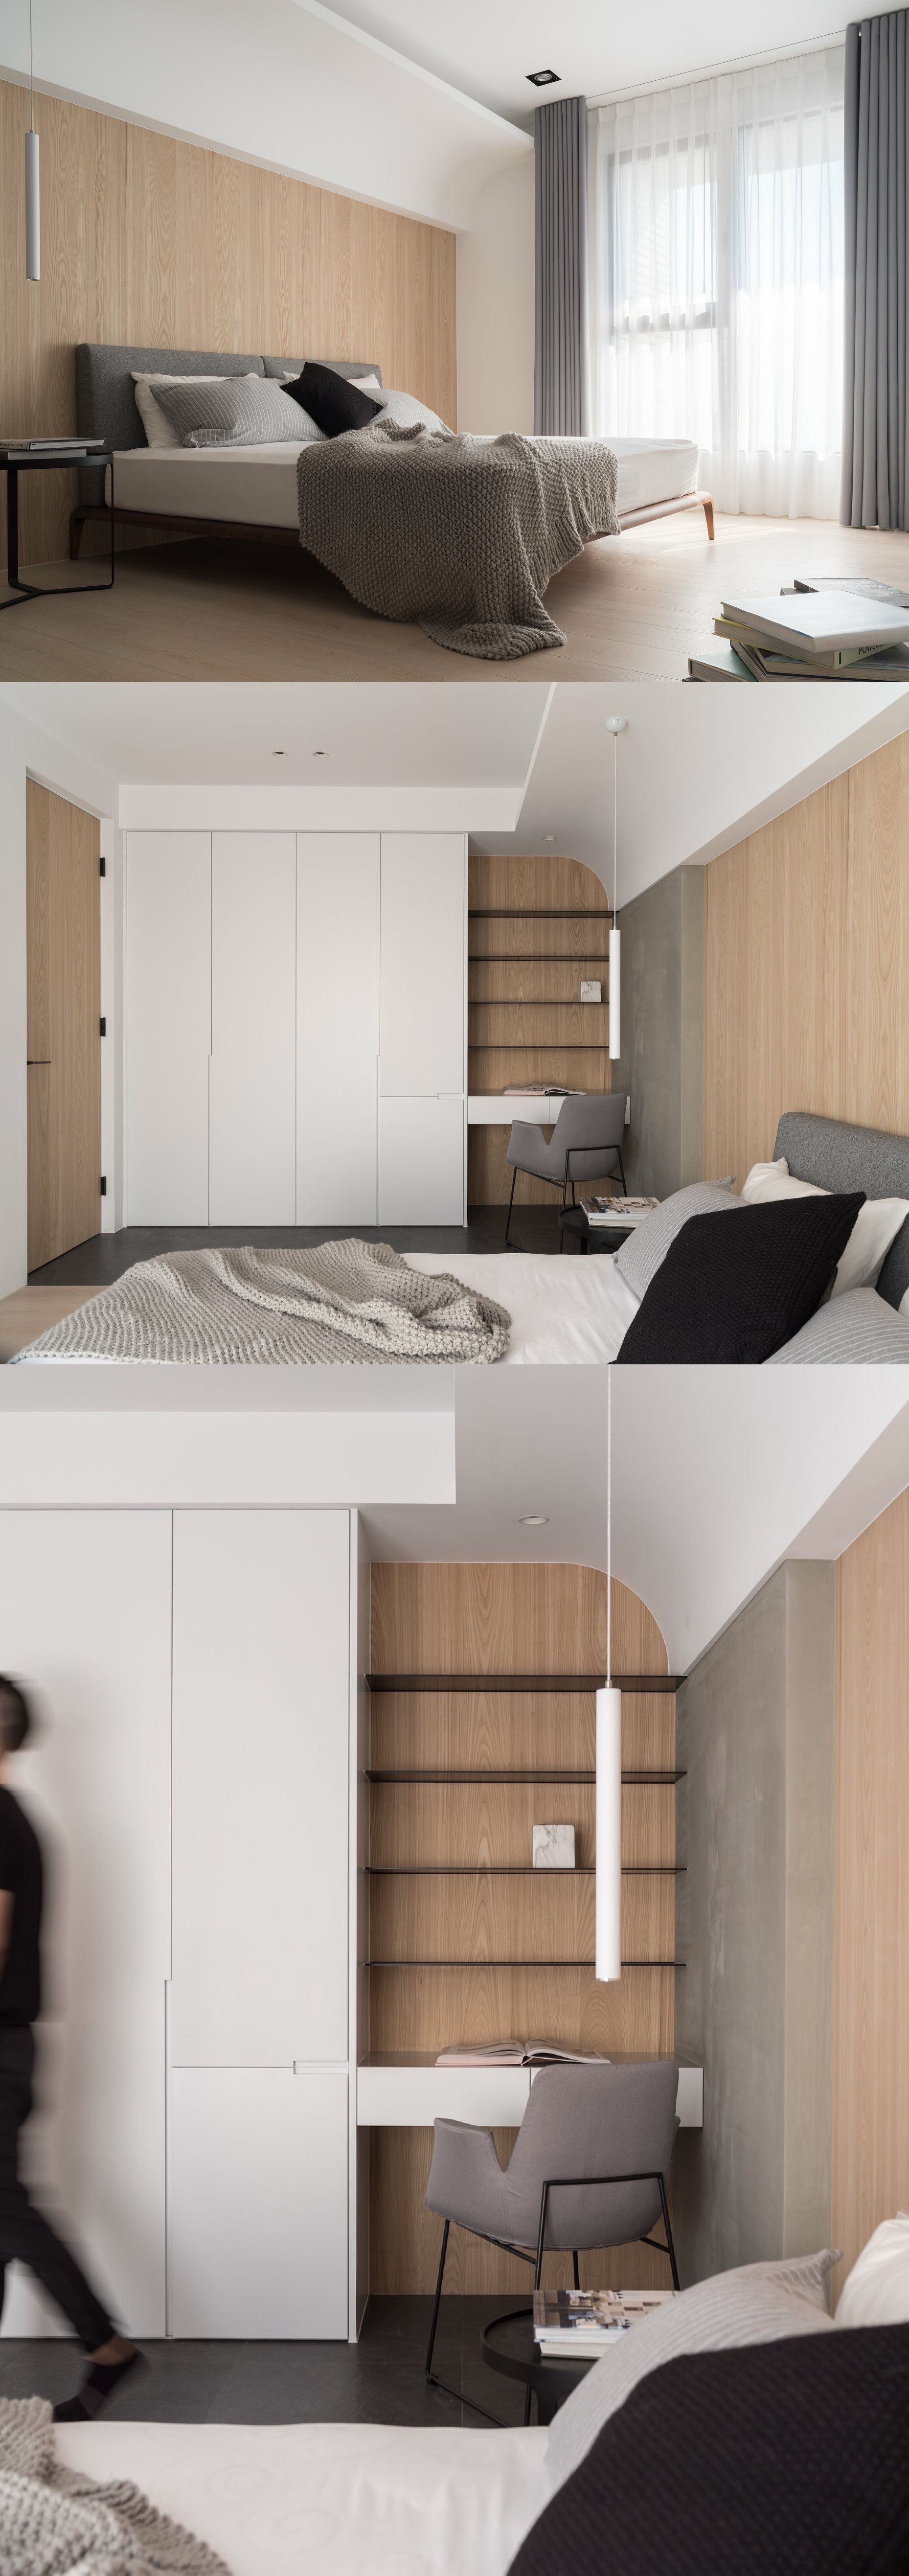 Pin by 張浚澤 on 室 / 臥室 / Bedroom。 Bed, Home decor, Home